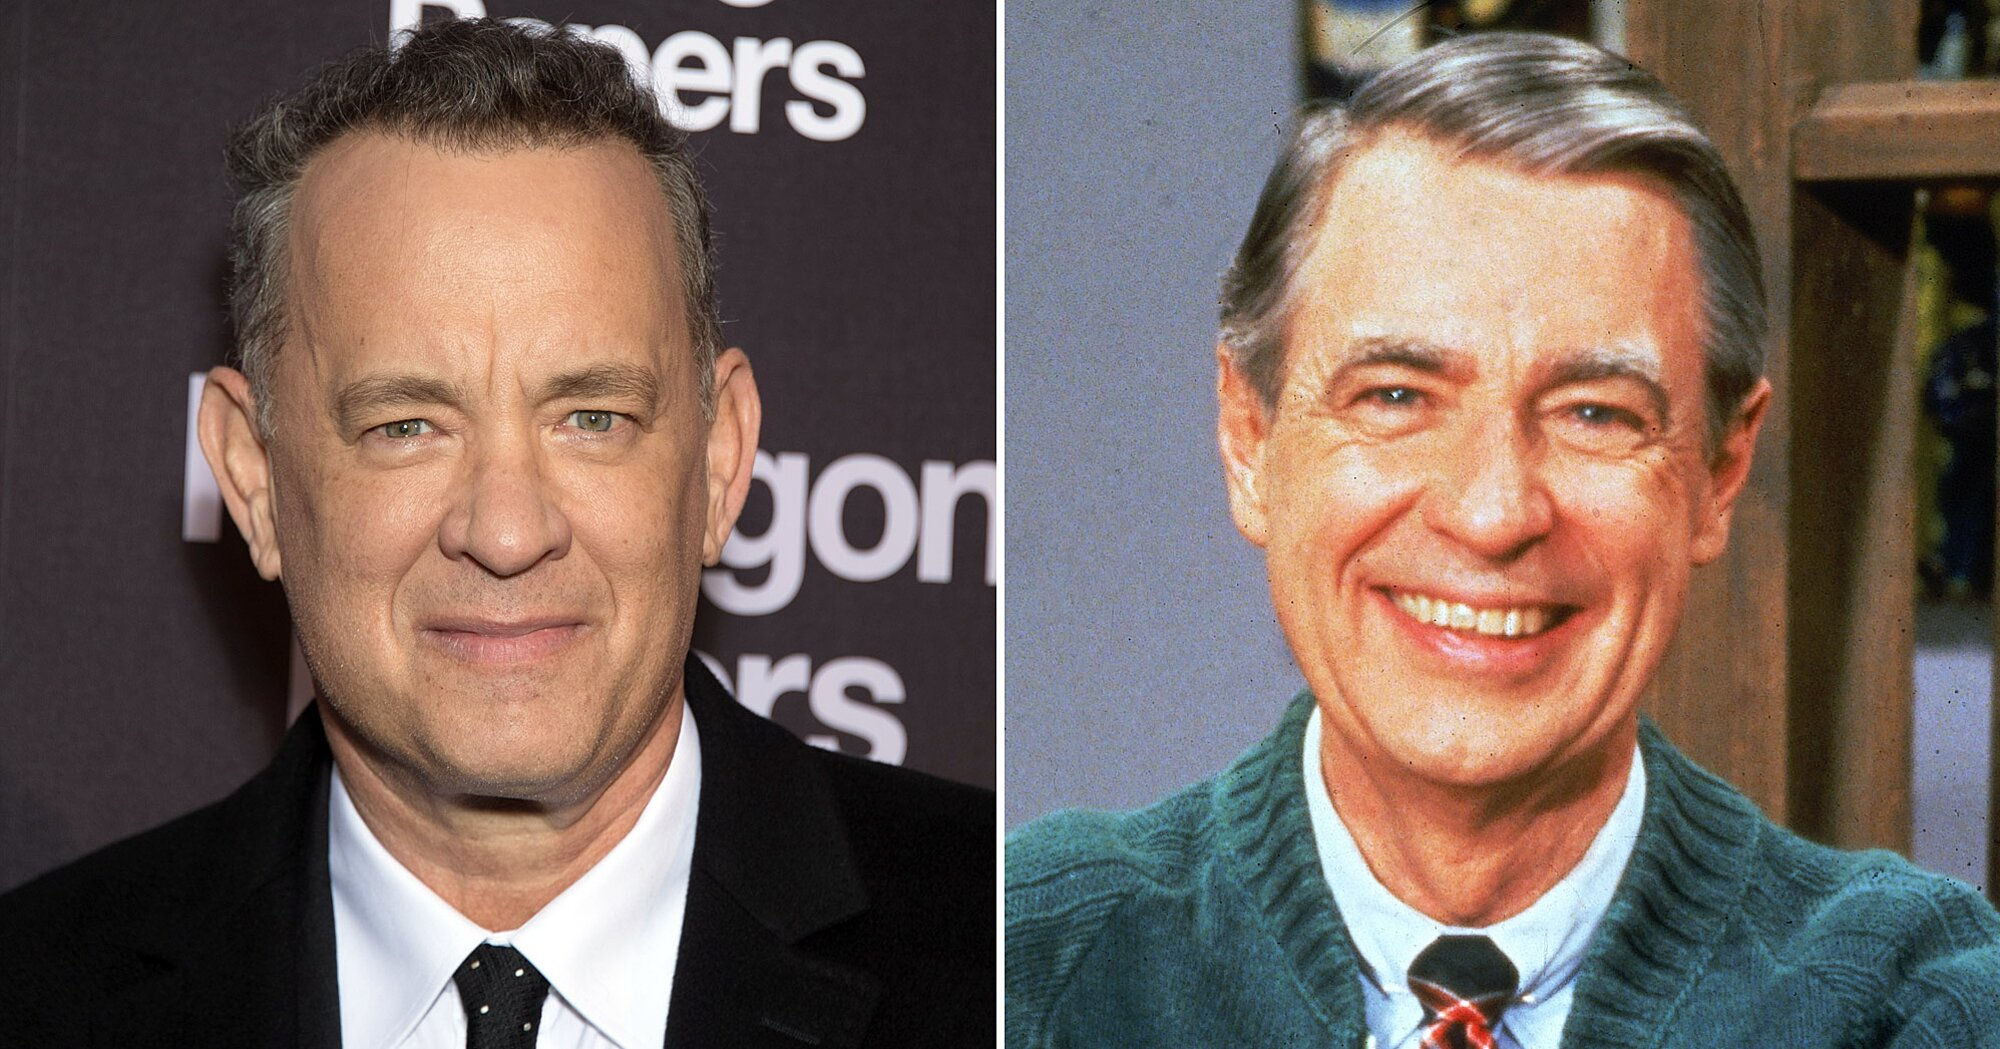 Fred Rogers Was A Huge Fan Of Tom Hanks Says His Widow People Com